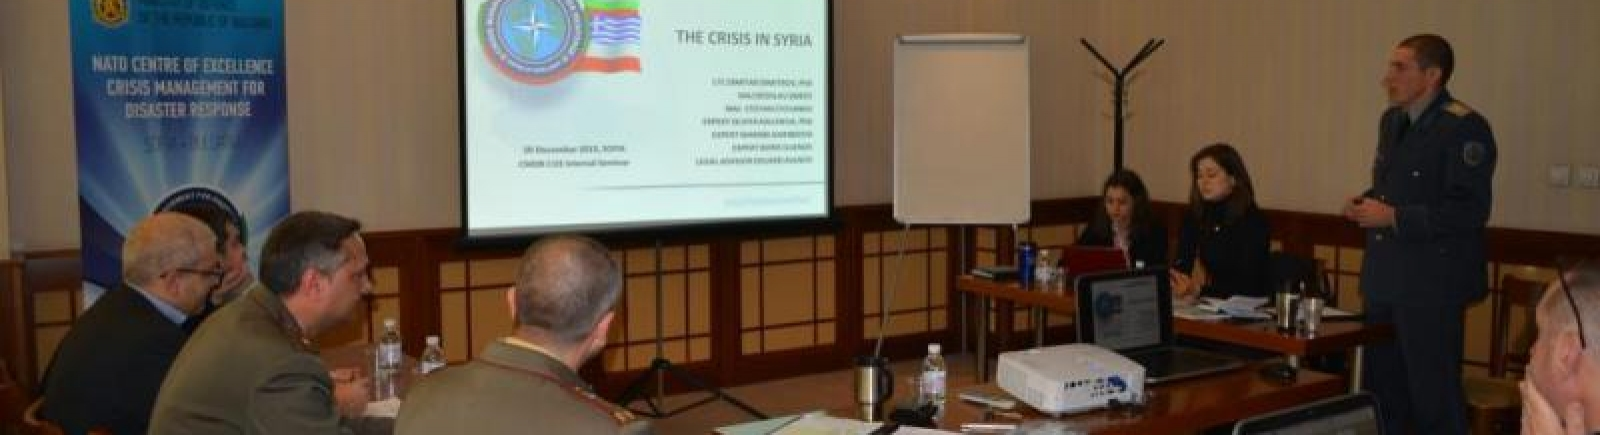 Internal CMDR COE Seminar on the Crisis in Syria